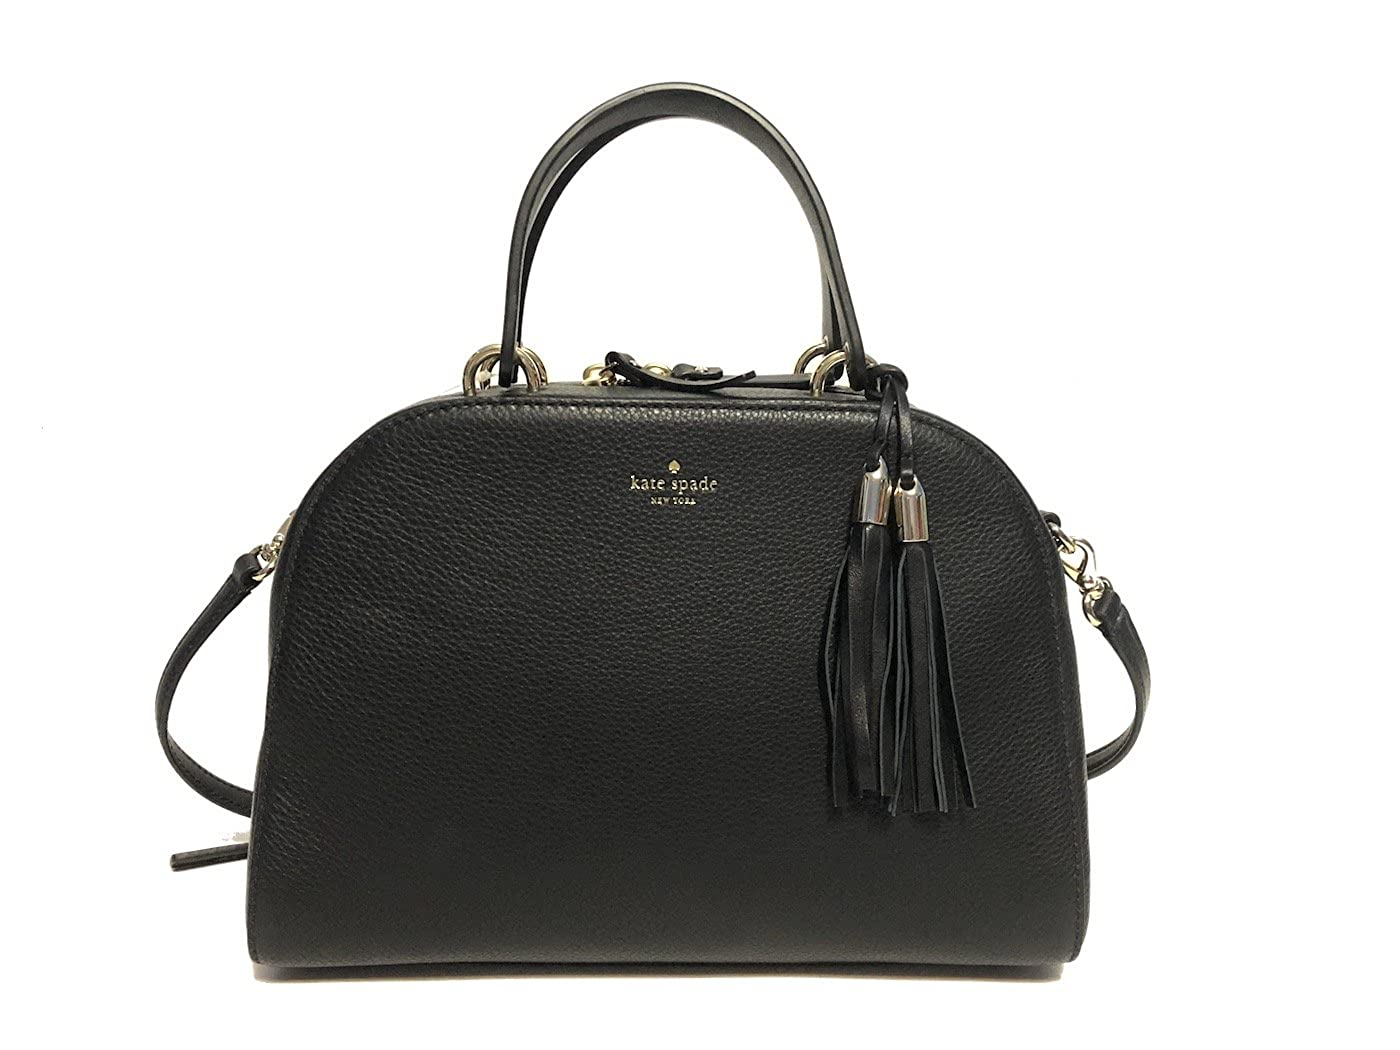 Kate Spade Bayley Atwood Place WKRU5321 Pebbled Leather Satchel Crossbody